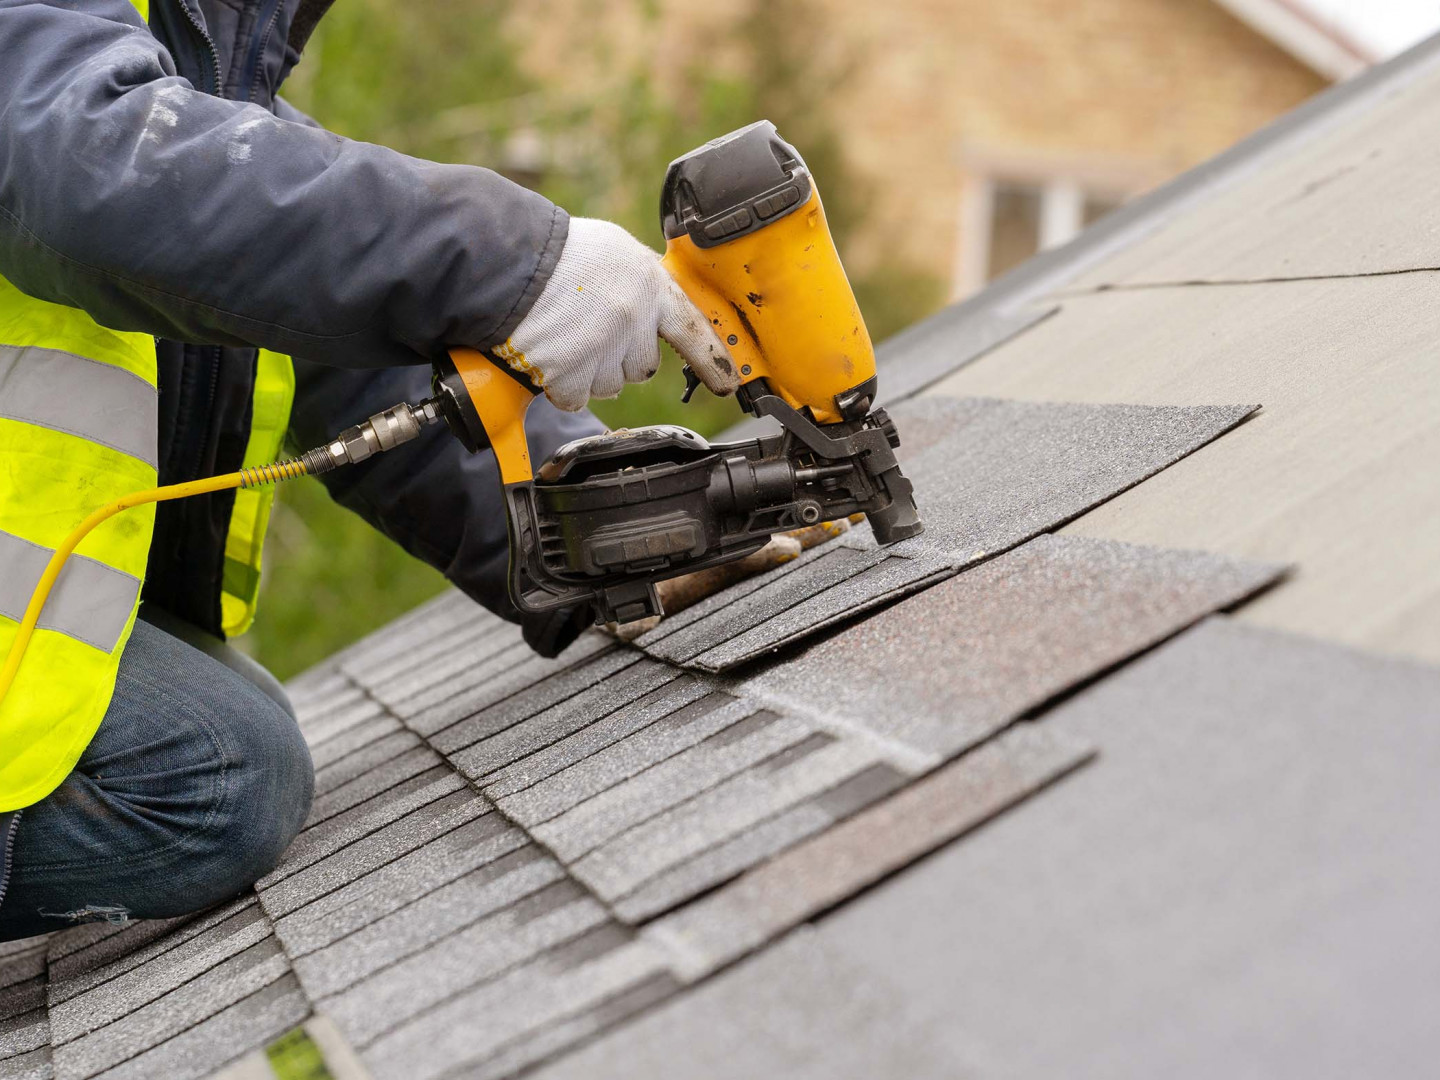 Rely on us for residential and commercial roof installation services